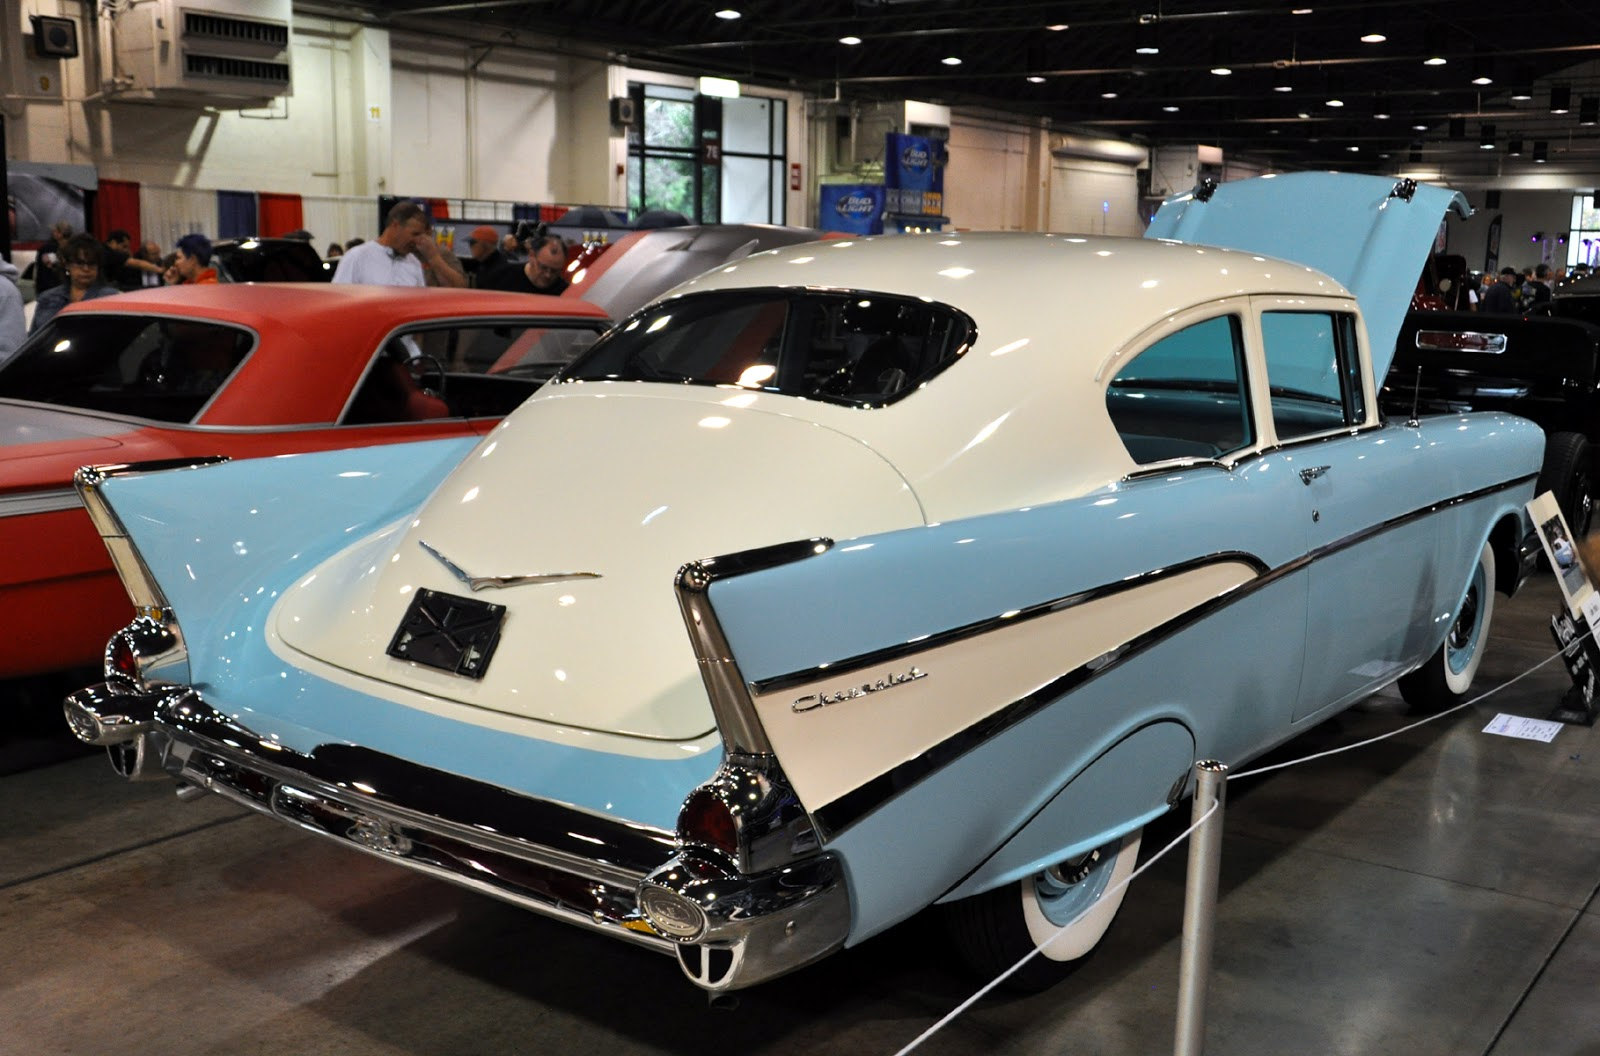 All Chevy chevy 210 : Just A Car Guy: John Poole's 1957 Chevy 210 Fleetline... a what if ...